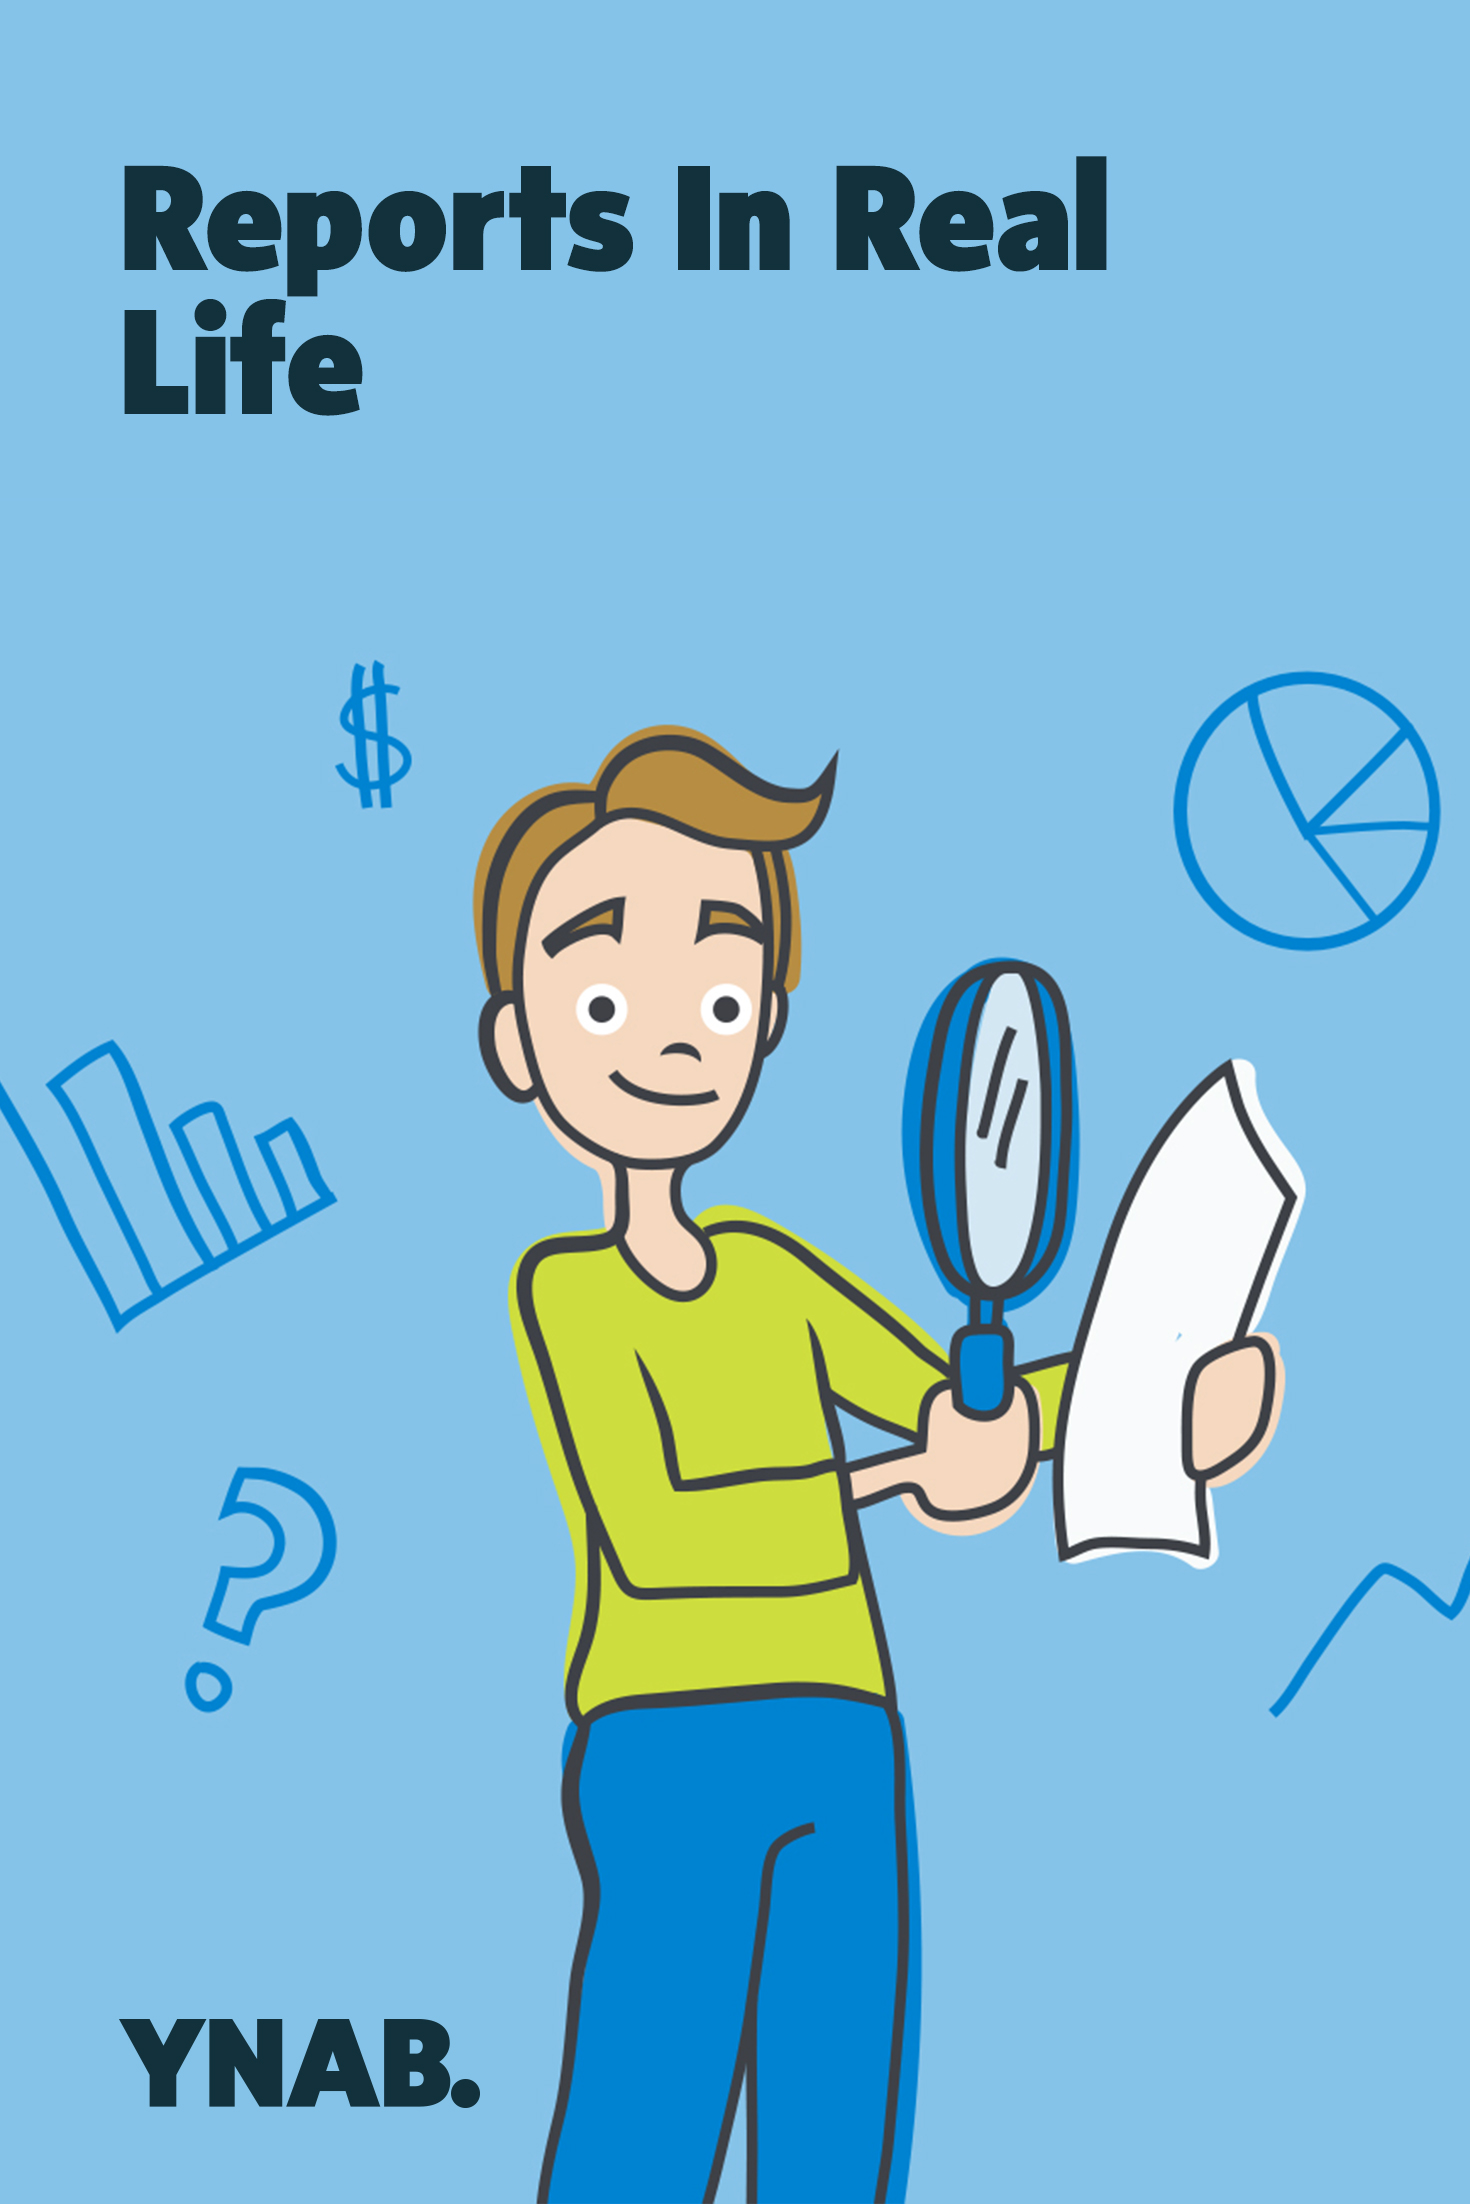 A Practical & Helpful View Of Your Money! Data isn't everything, but it is helpful (am I right?) to identify behaviors, name priorities, and target areas to save more.   YNAB